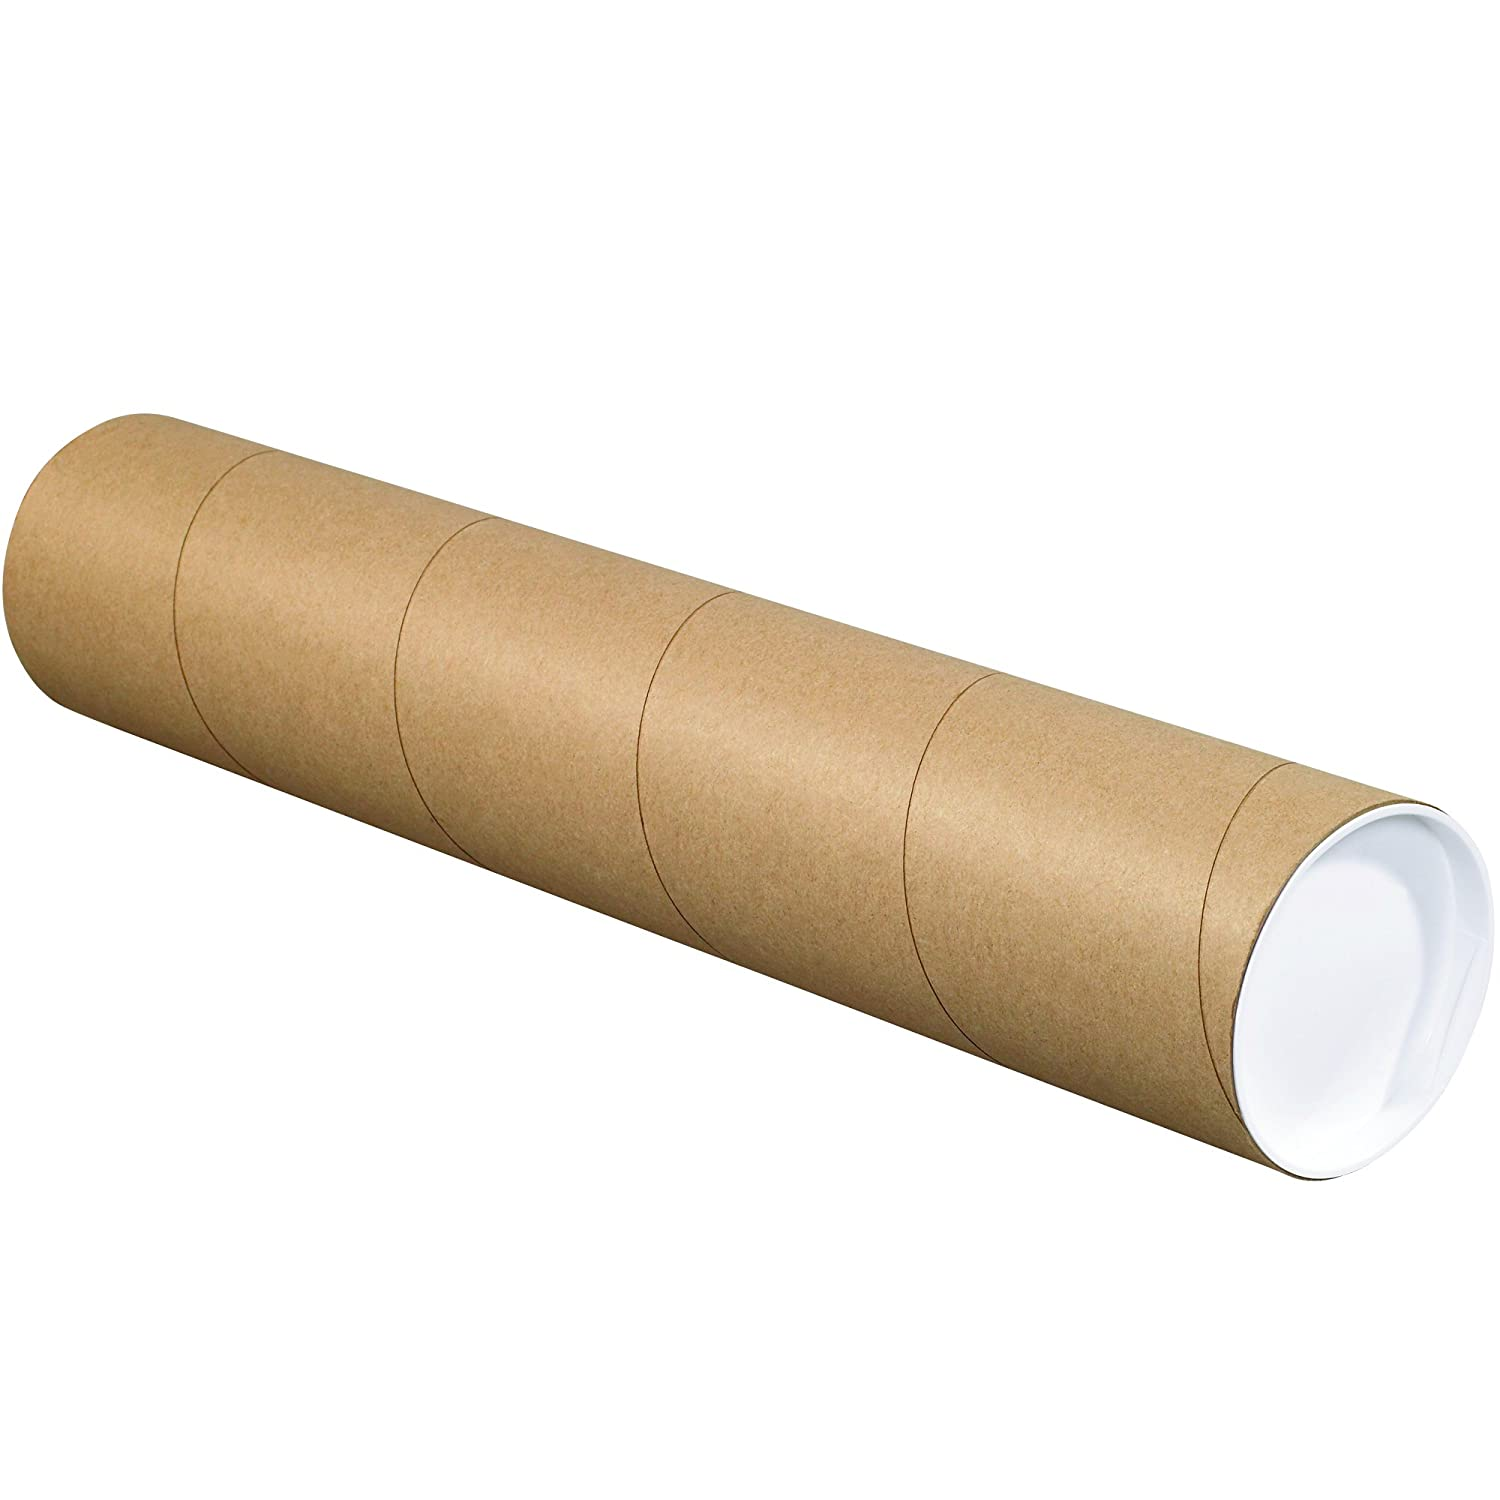 Ship Now Supply SNP4020K Mailing Tubes Many popular brands with x Kraf Caps 20